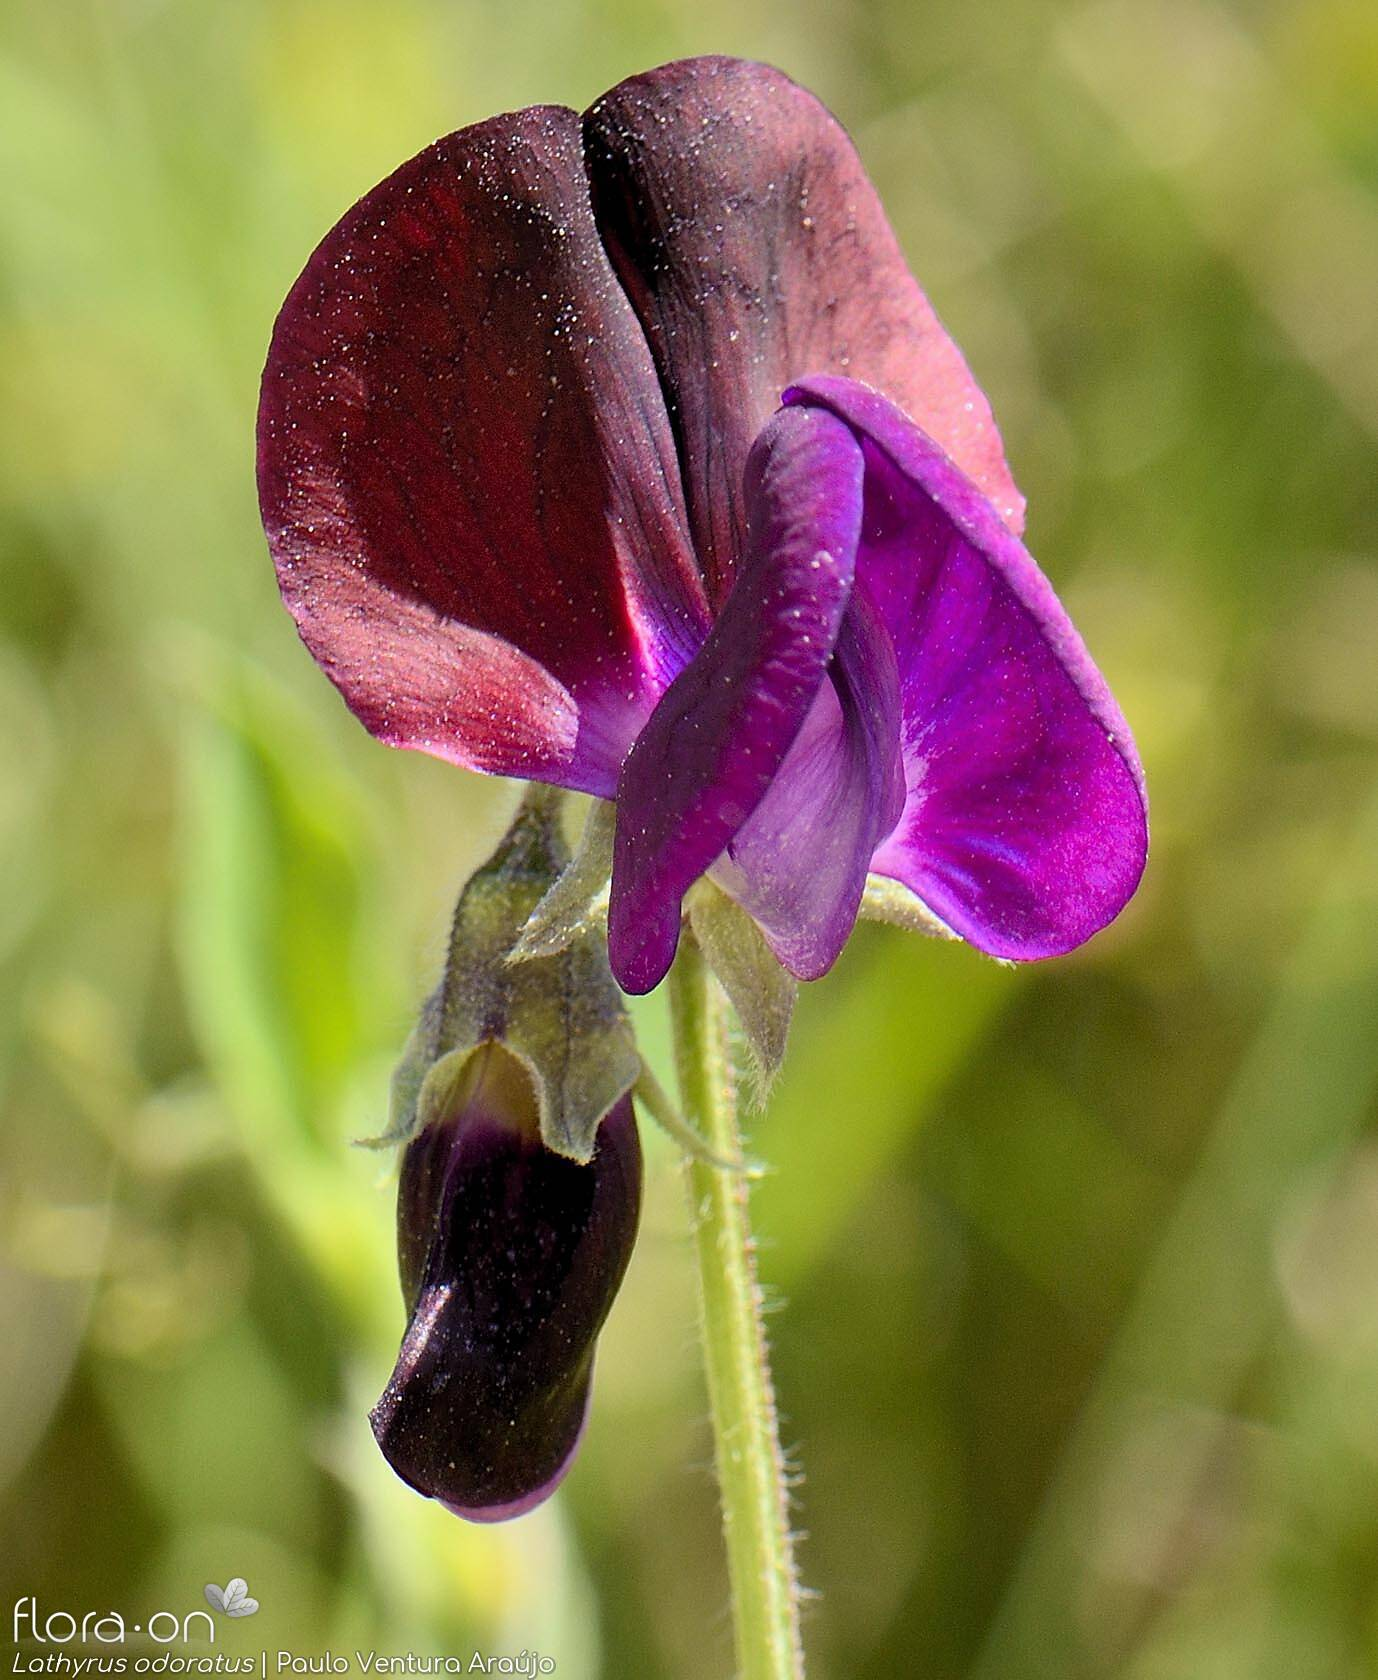 Lathyrus odoratus - Flor (close-up) | Paulo Ventura Araújo; CC BY-NC 4.0